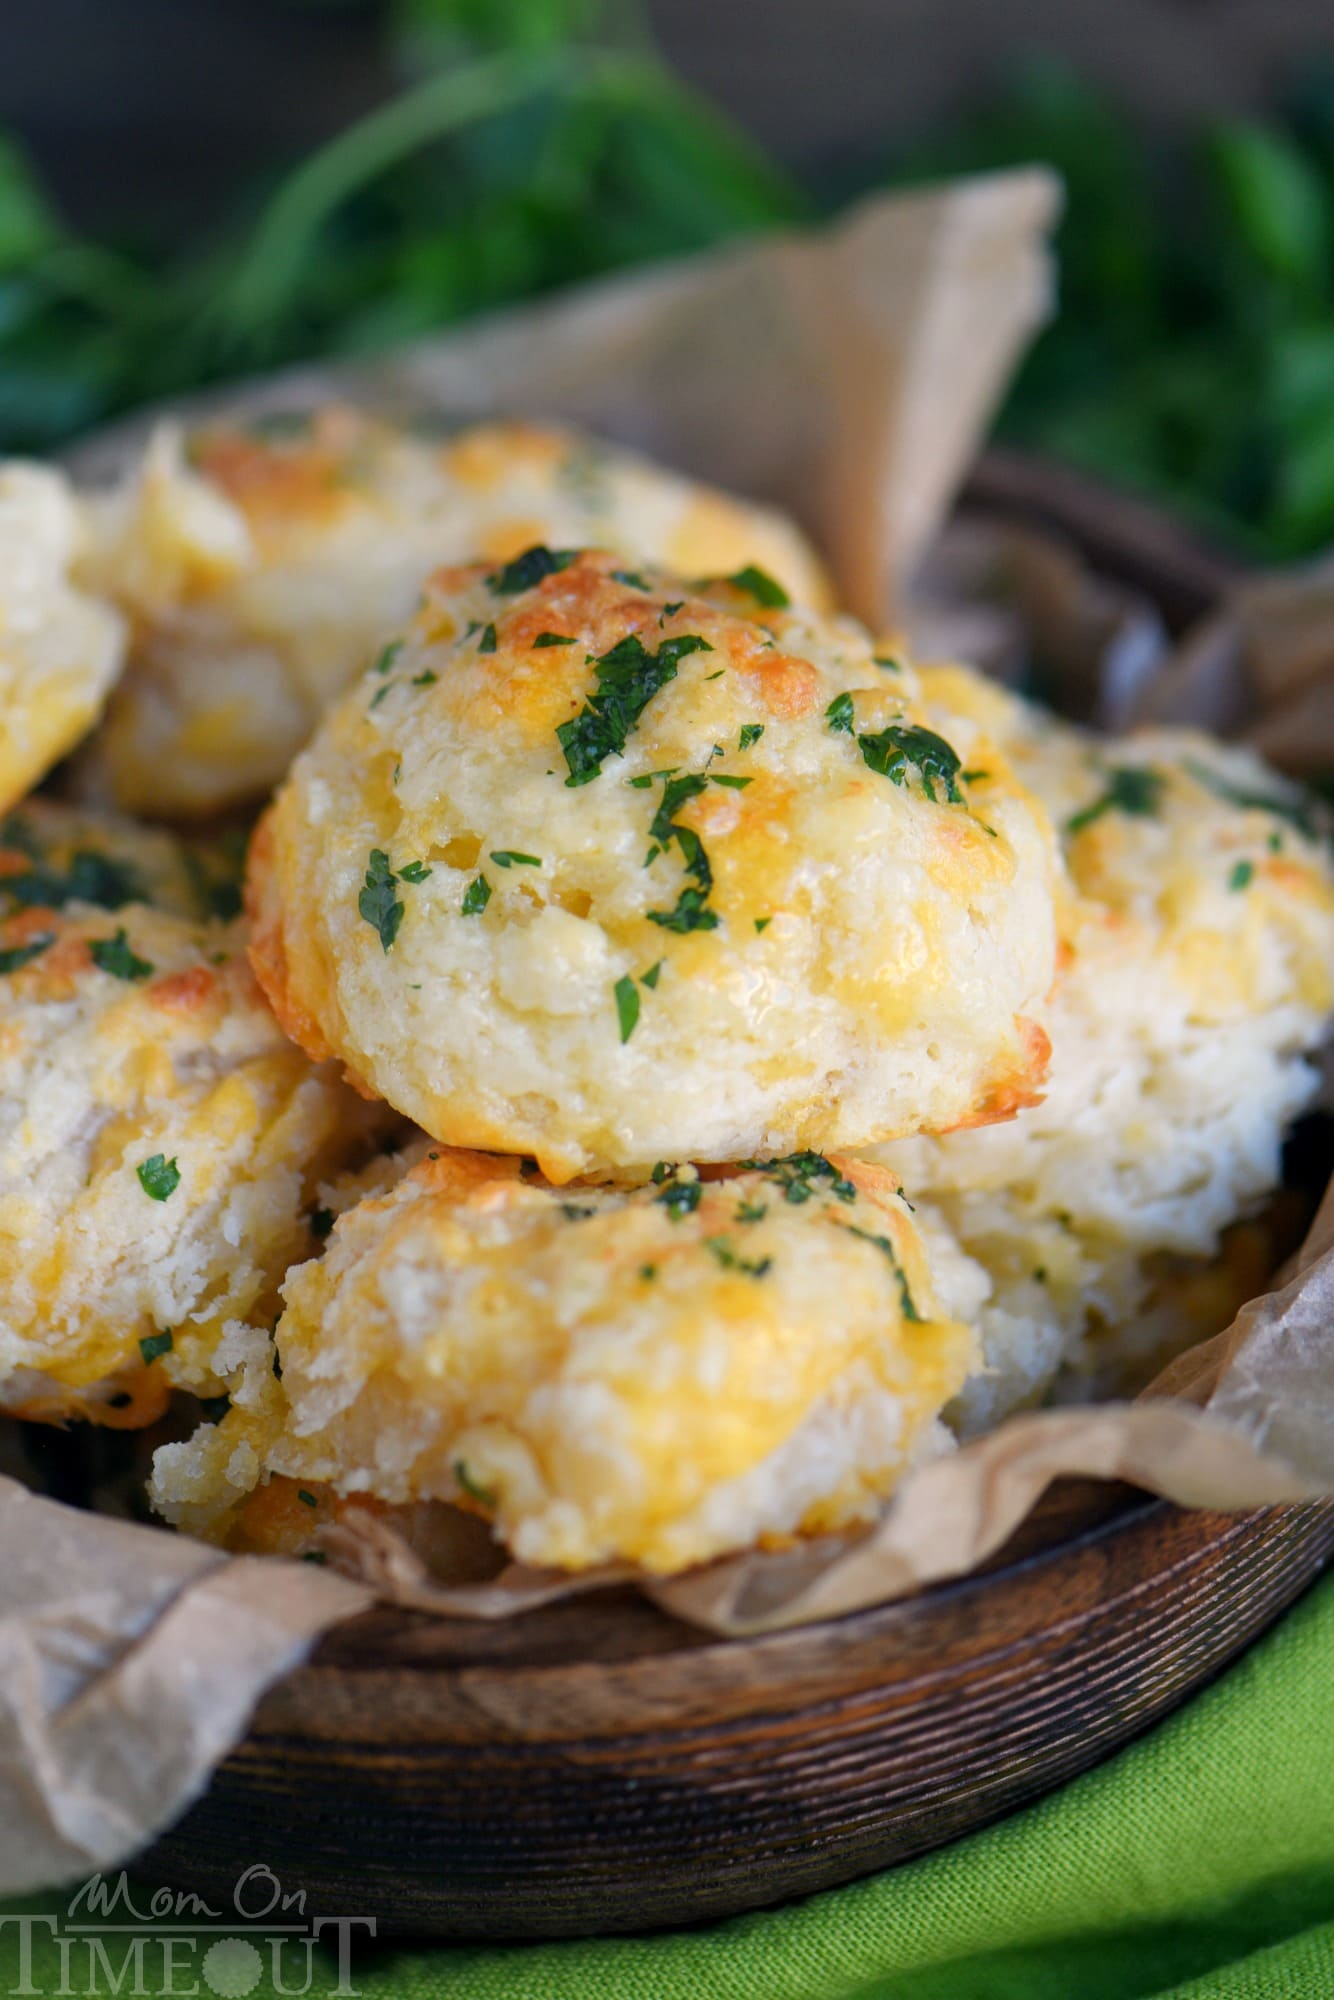 These Cheddar Bay Biscuits (Red Lobster Copycat) are entirely irresistible and can be on your table in less than 20 minutes! I dare you to eat just one! Packed with cheesy goodness, these easy biscuits are the perfect addition to every meal! // Mom On Timeout